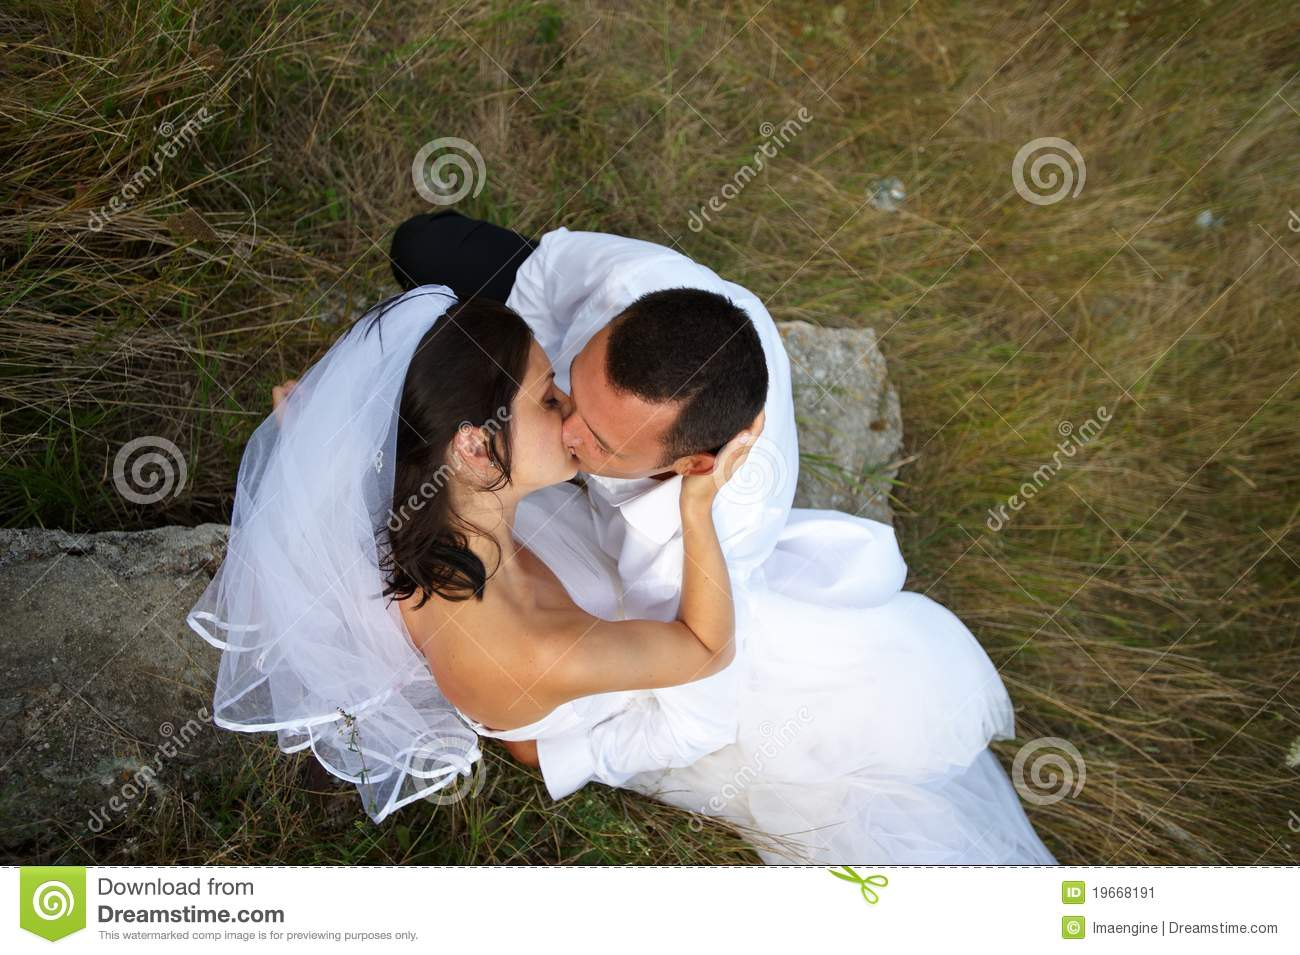 The magic of the wedding kiss between lovers